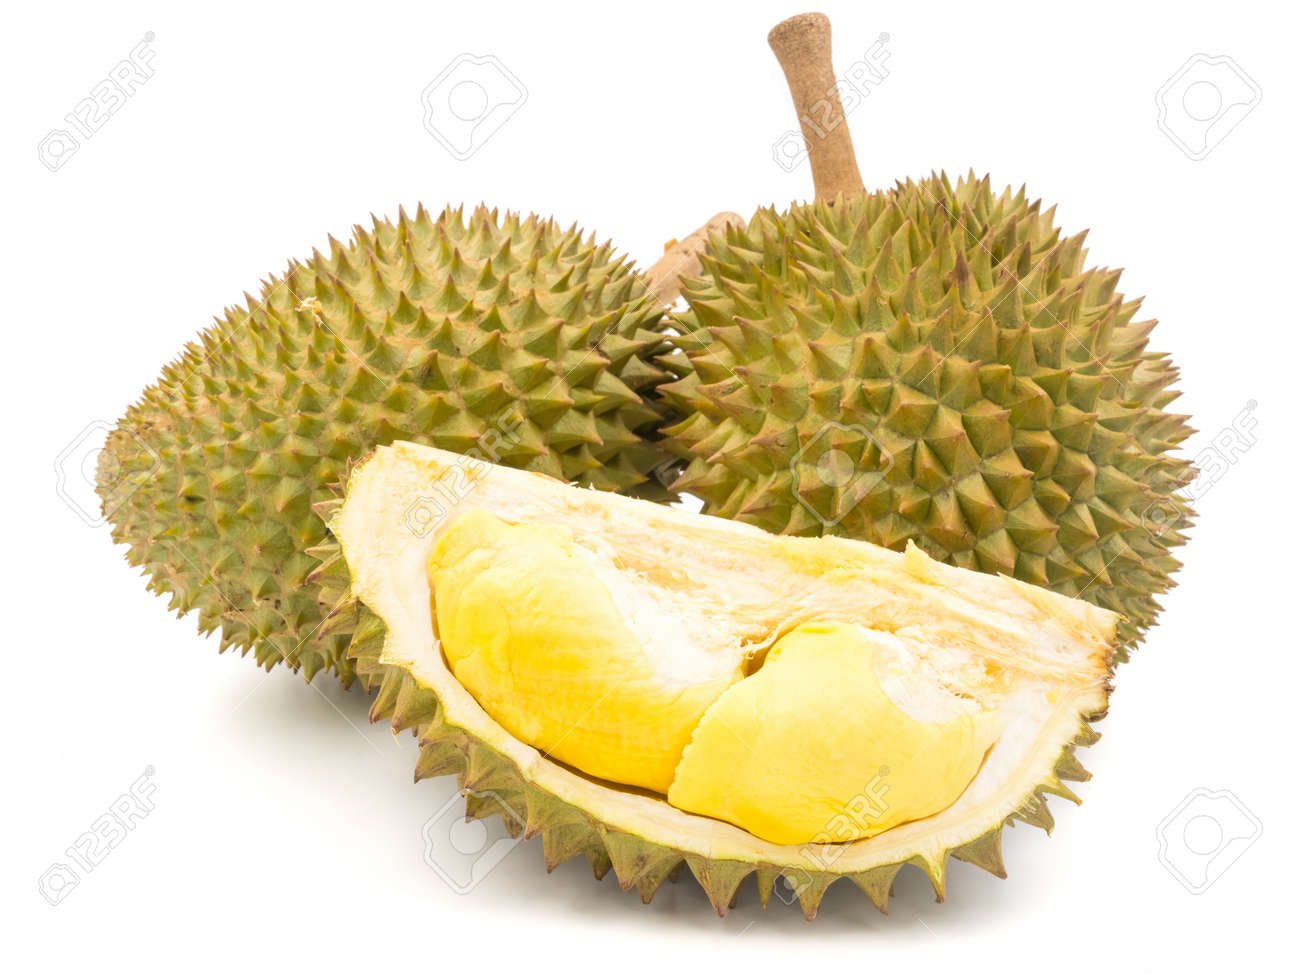 King of fruits, Durian on white background. - 78951142